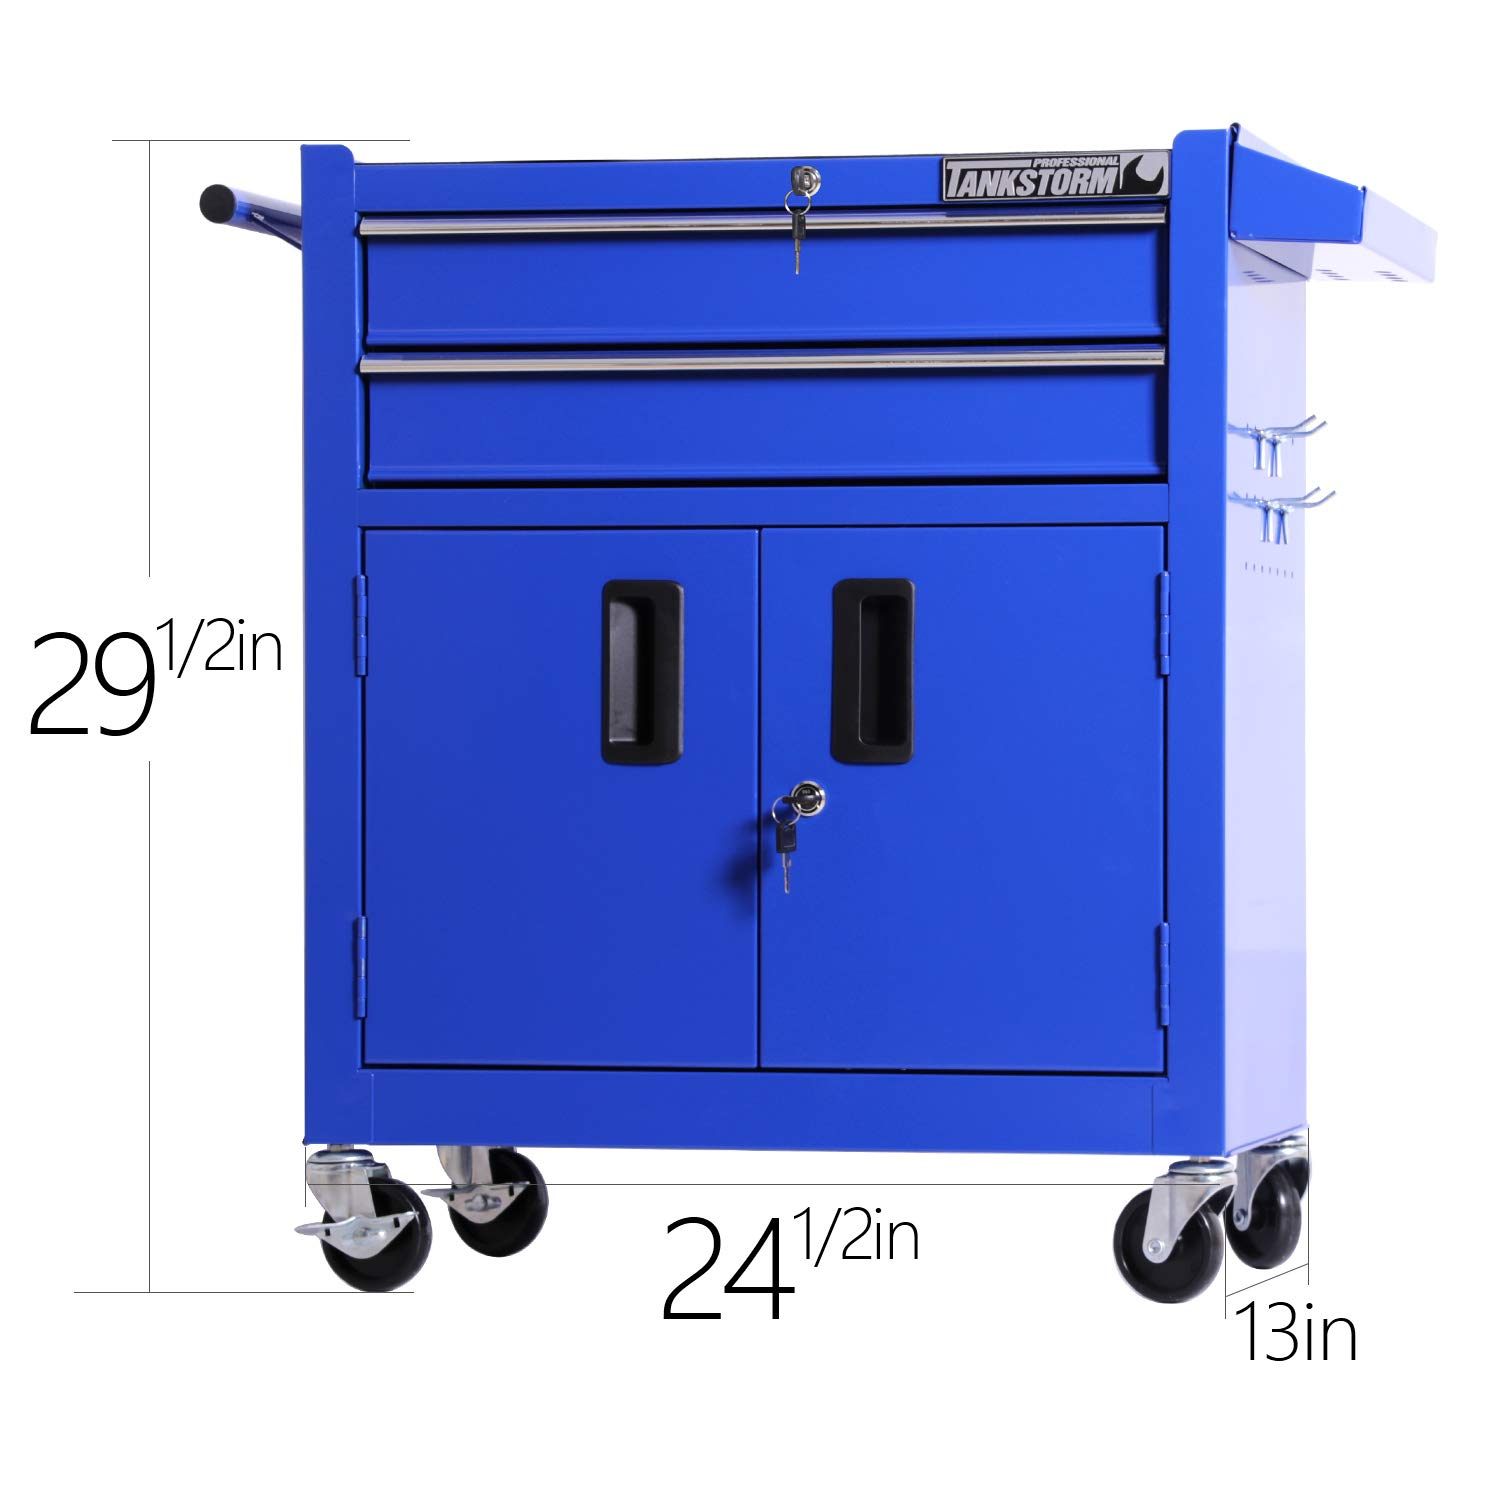 TANKSTORM Tool Chest Heavy Duty Cart Steel Rolling Tool Box with Lockable Drawers and Doors (TZ12A Blue) by TANKSTORM (Image #2)